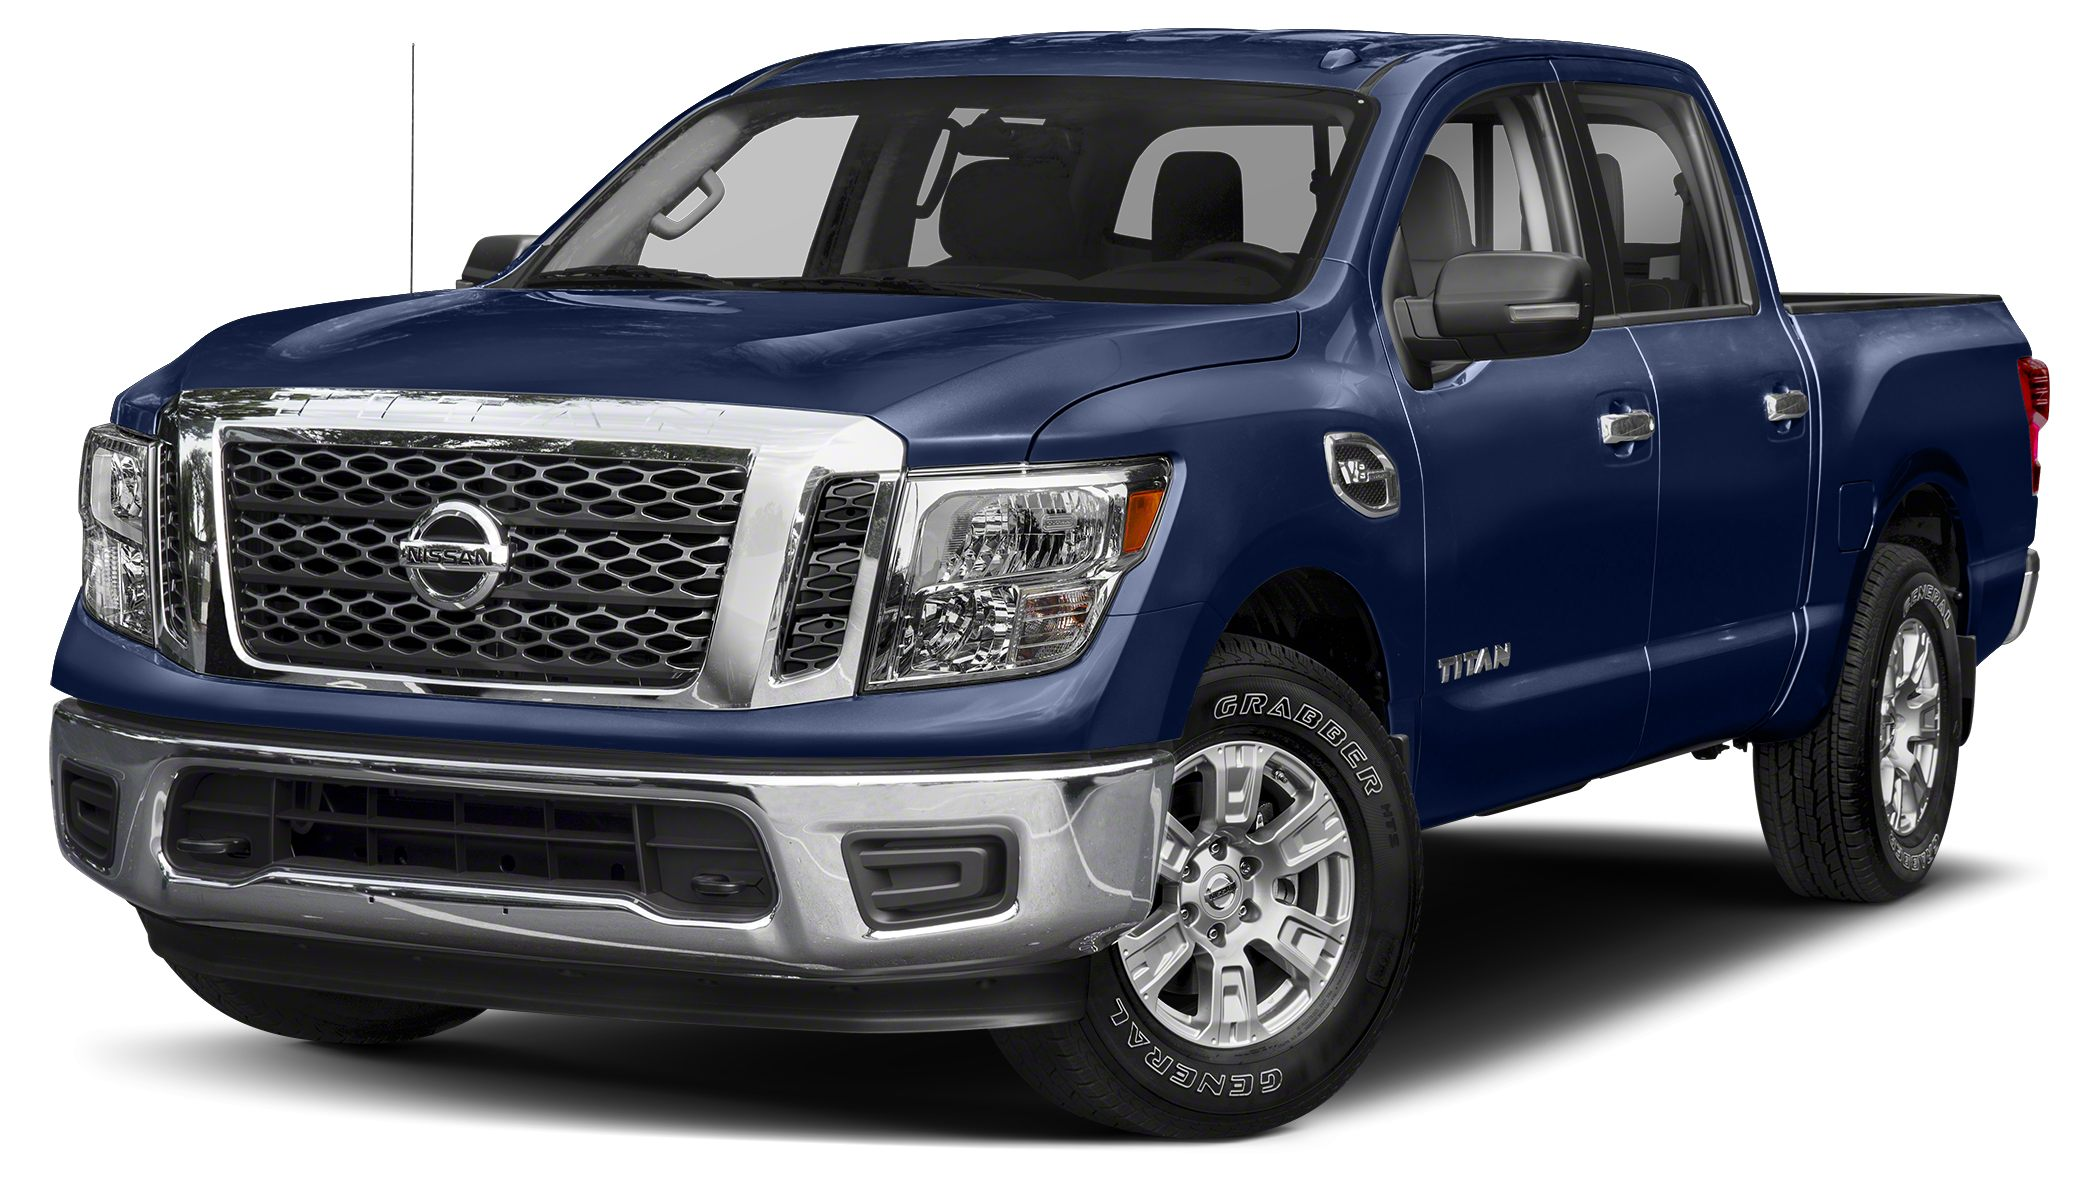 2017 Nissan Titan Platinum This 2017 Nissan Titan Platinum Reserve will sell fast Priced to sell